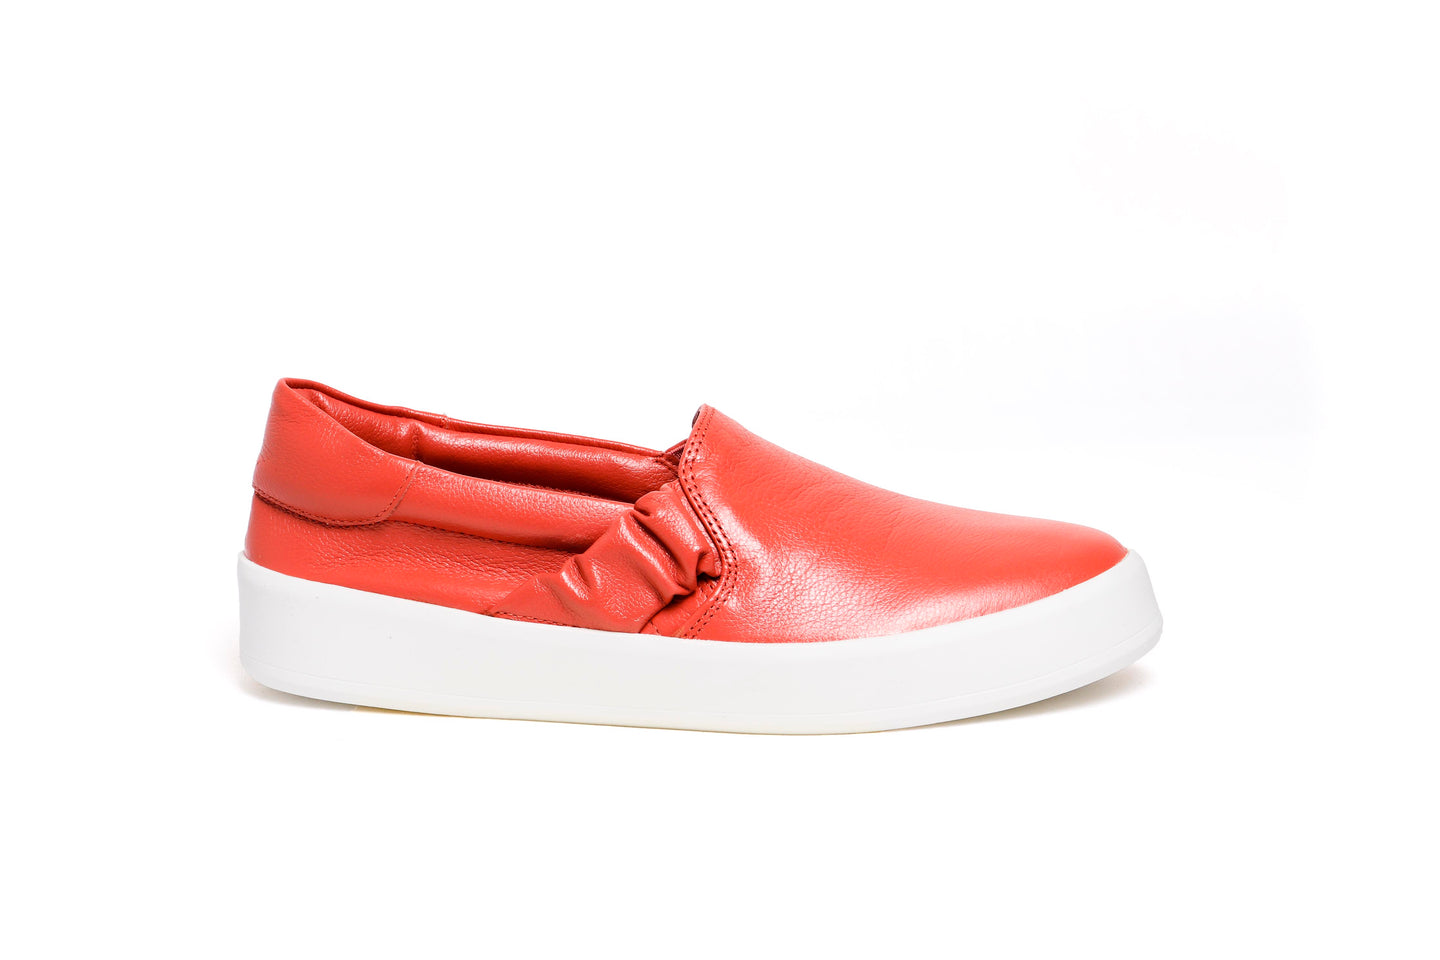 *NEW* Terracotta Leather Slip-on Sneakers